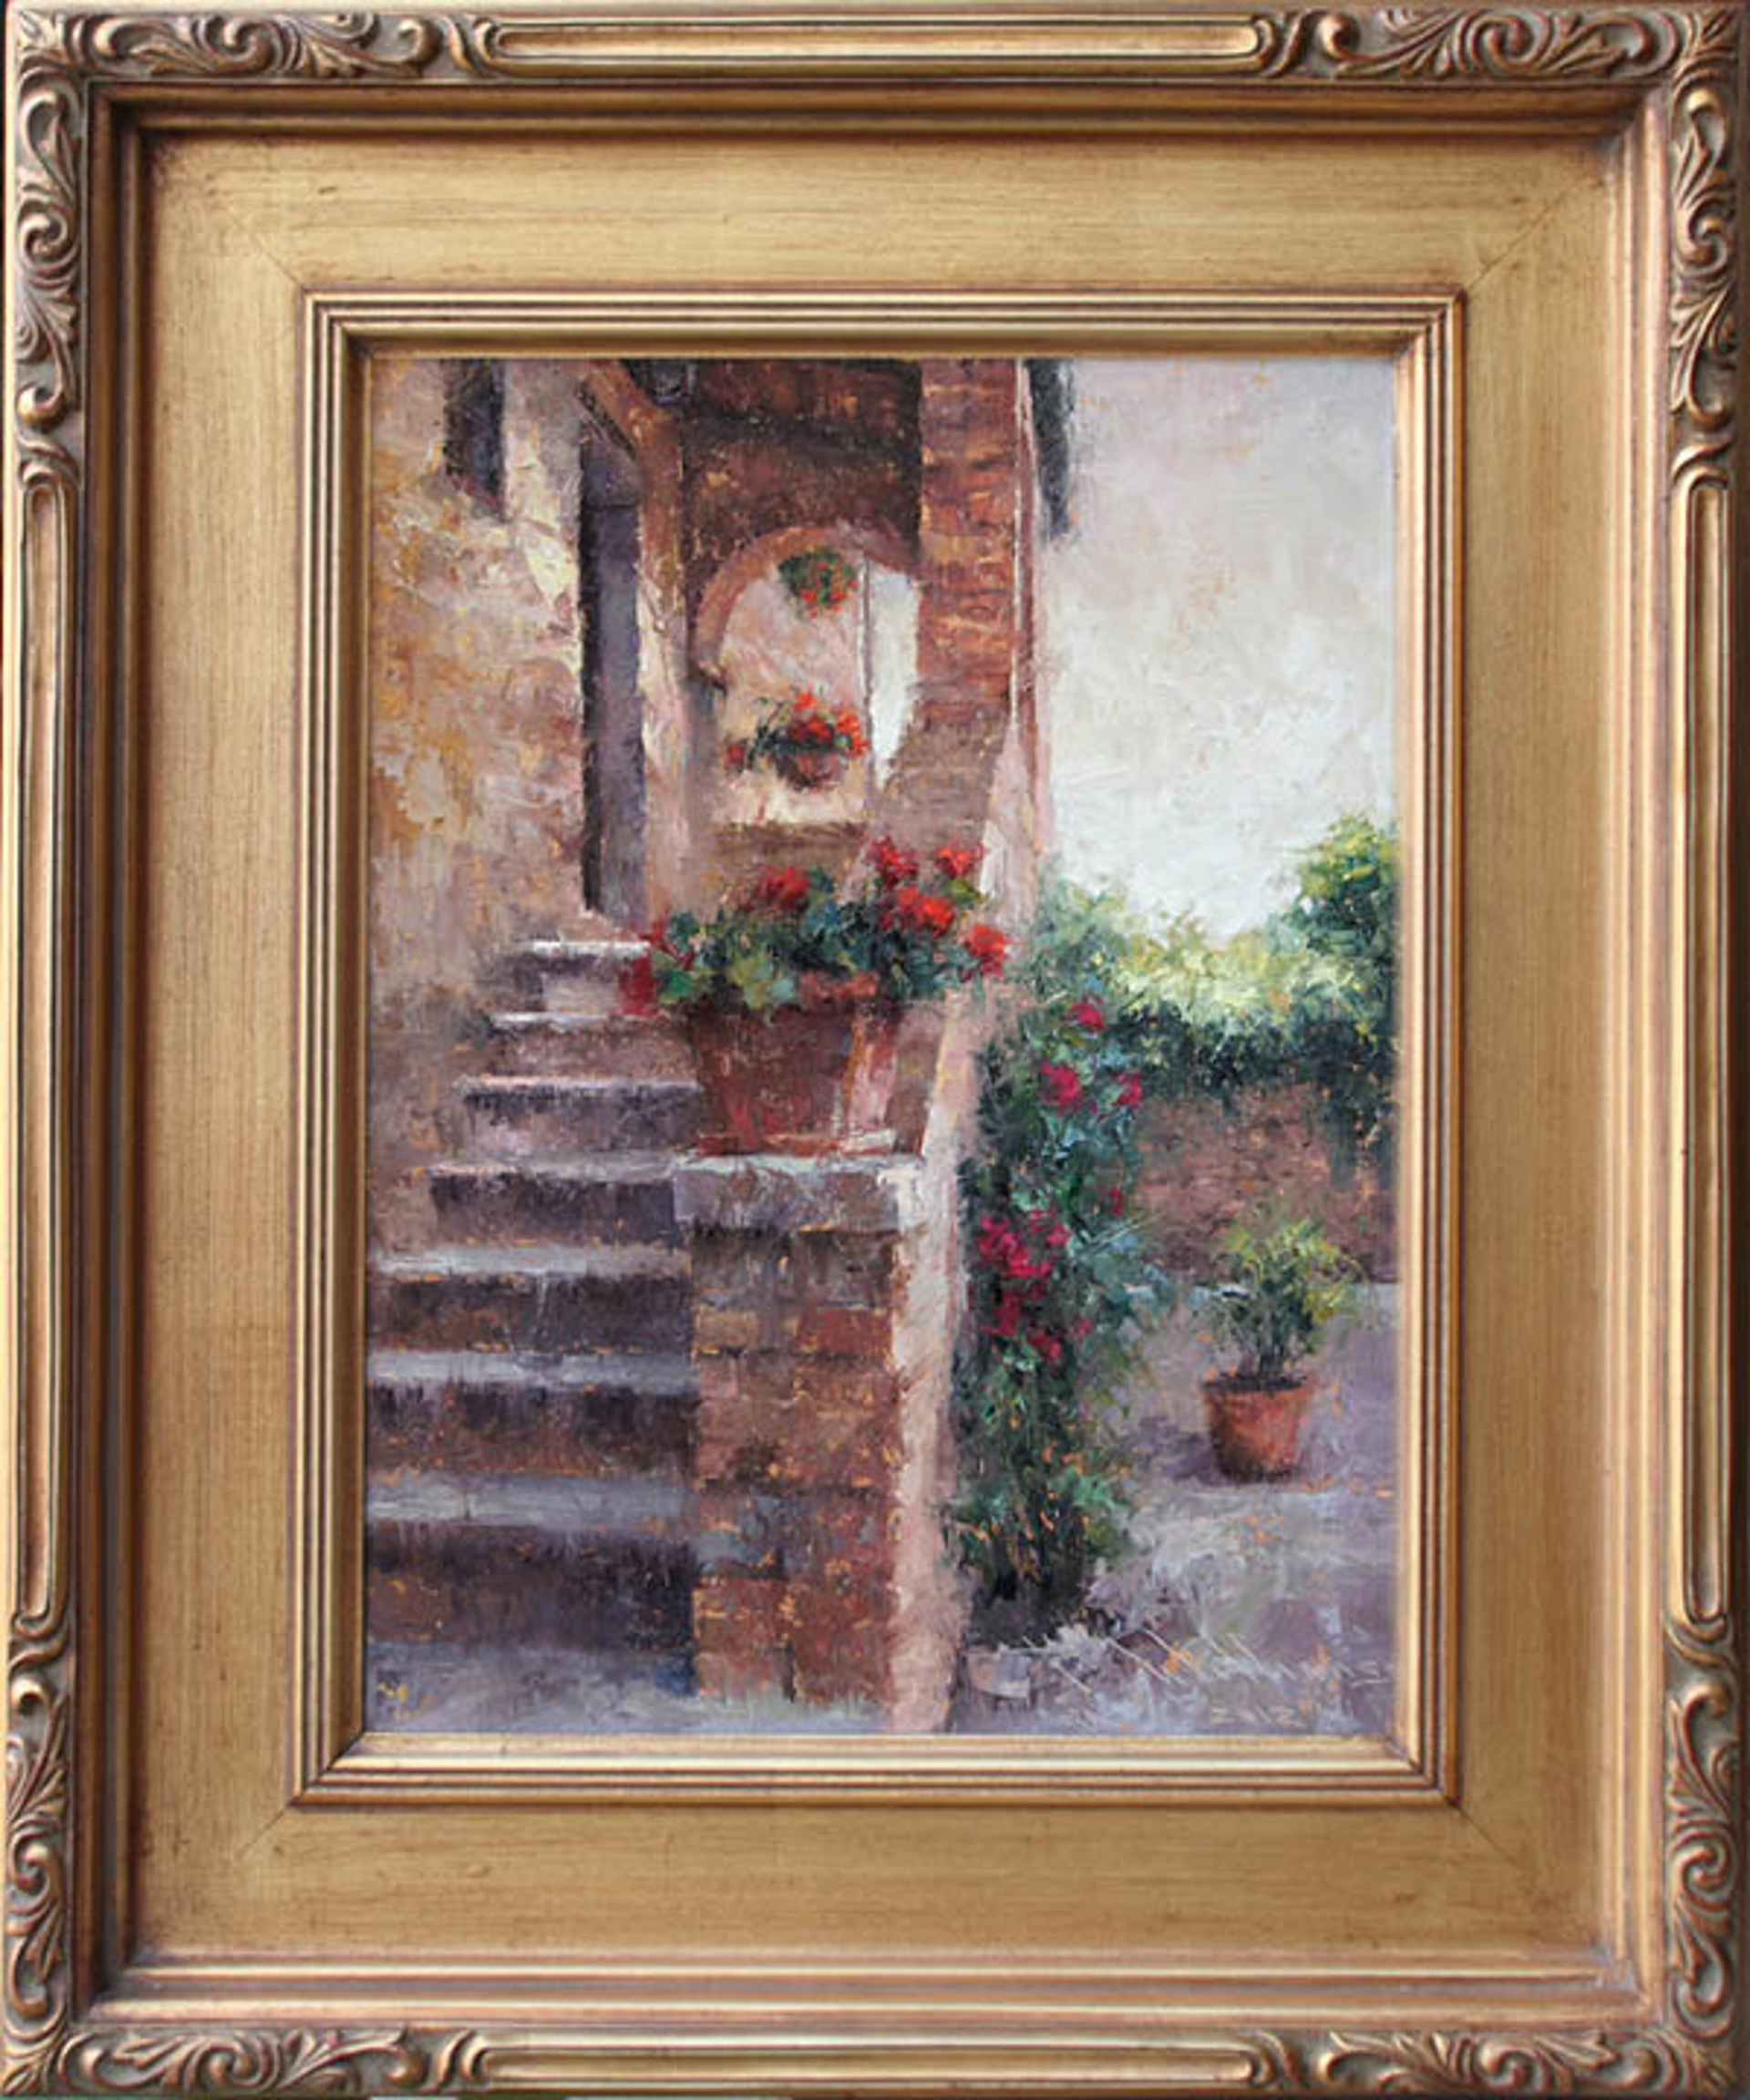 Stairway Home, Pienza by Todd A. Williams